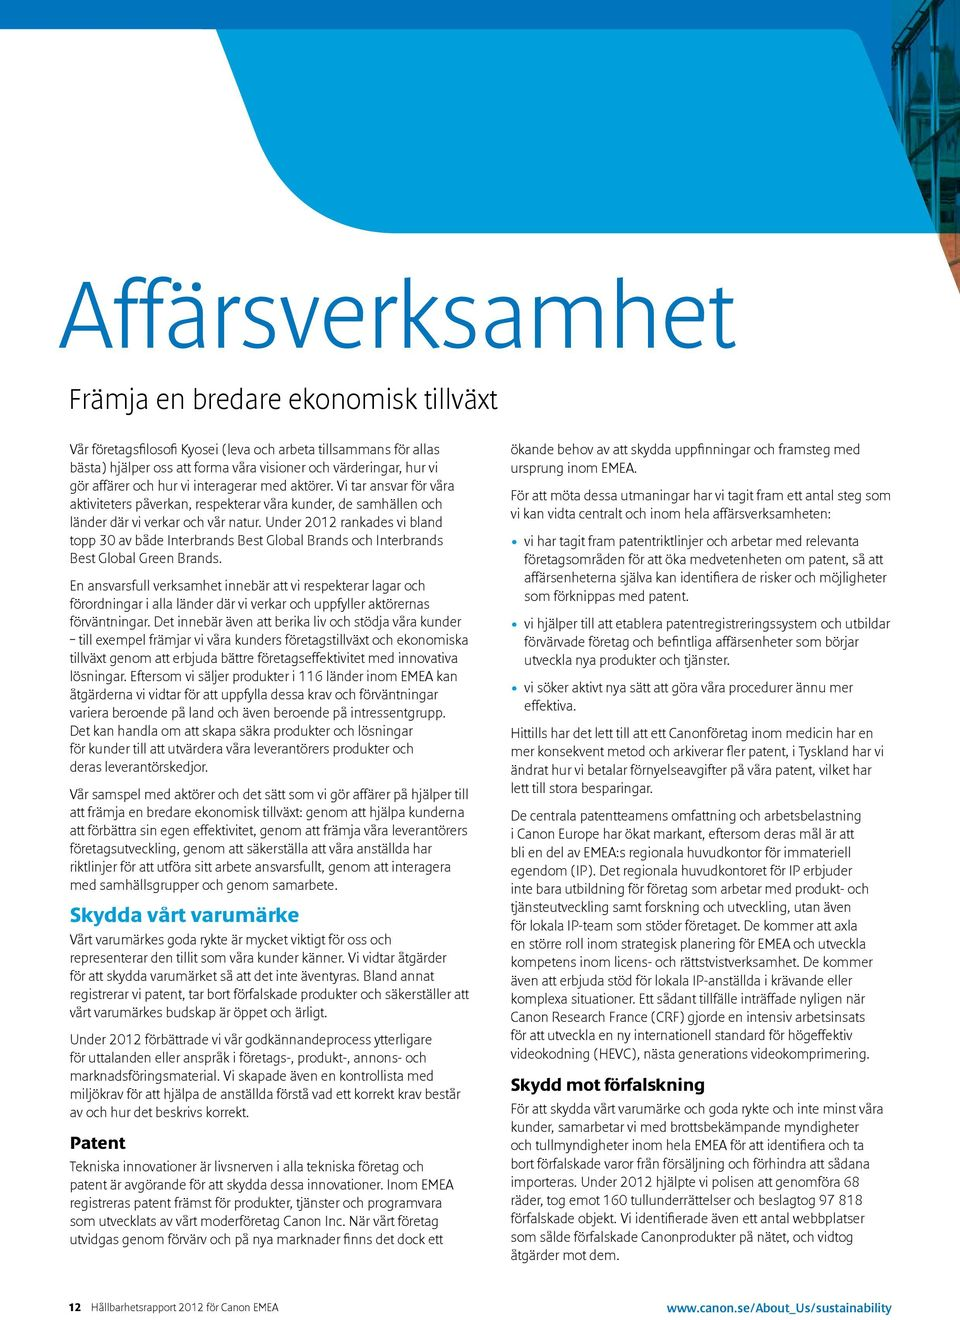 Under 2012 rankades vi bland topp 30 av både Interbrands Best Global Brands och Interbrands Best Global Green Brands.